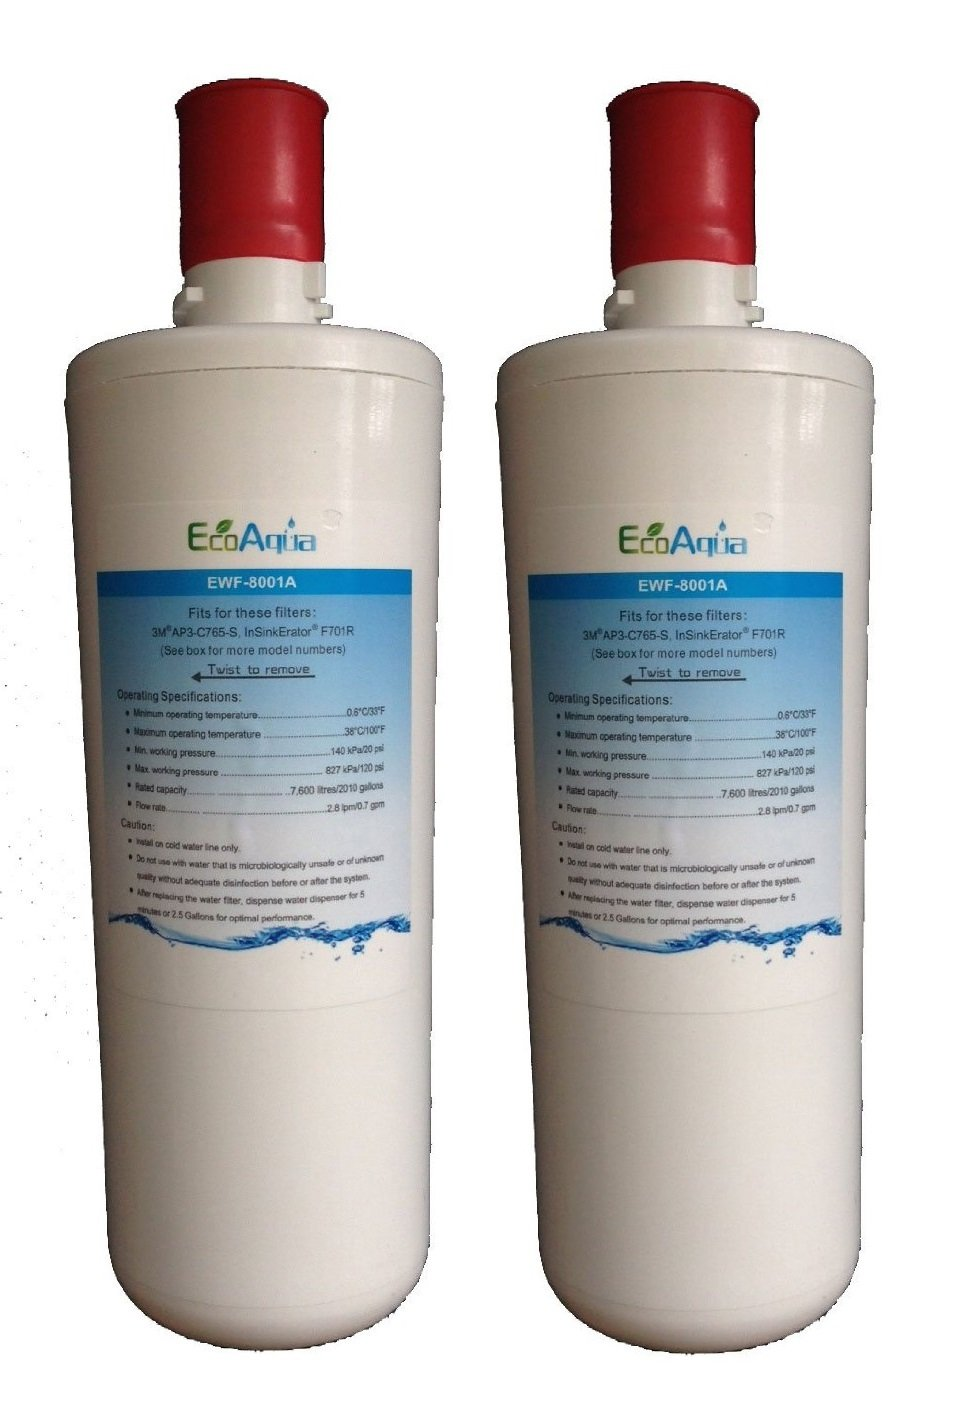 EWF-8001A EcoAqua Under Sink Water Filter Replacement for 3M AP3-C765 (2-Pack) by EcoAqua